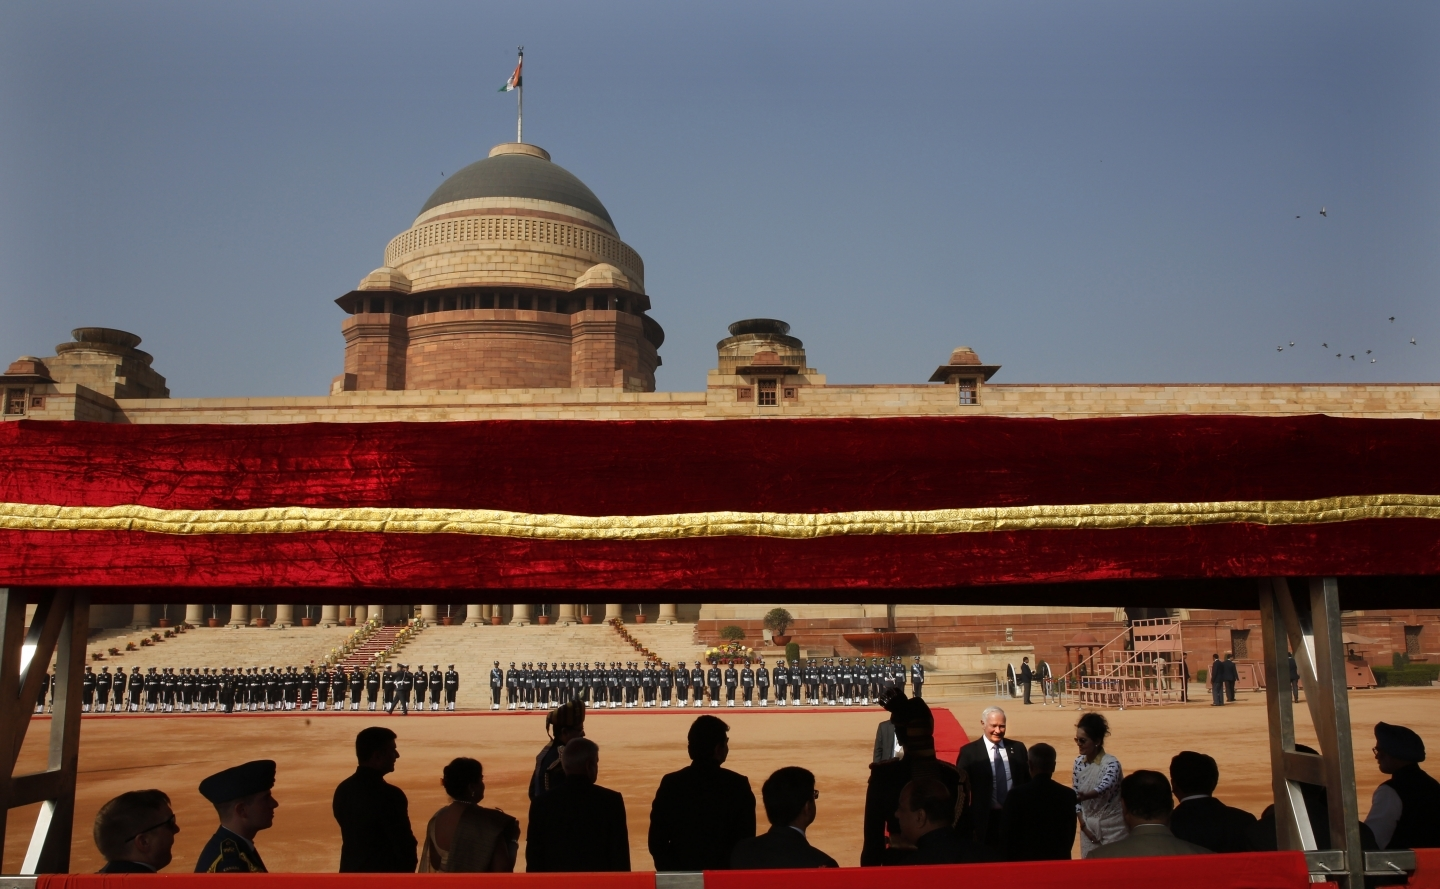 A ceremonial reception at the Indian presidential palace attended by former Governor General David Johnston in New Delhi, India, Monday, Feb. 24, 2014. (AP Photo/Manish Swarup)